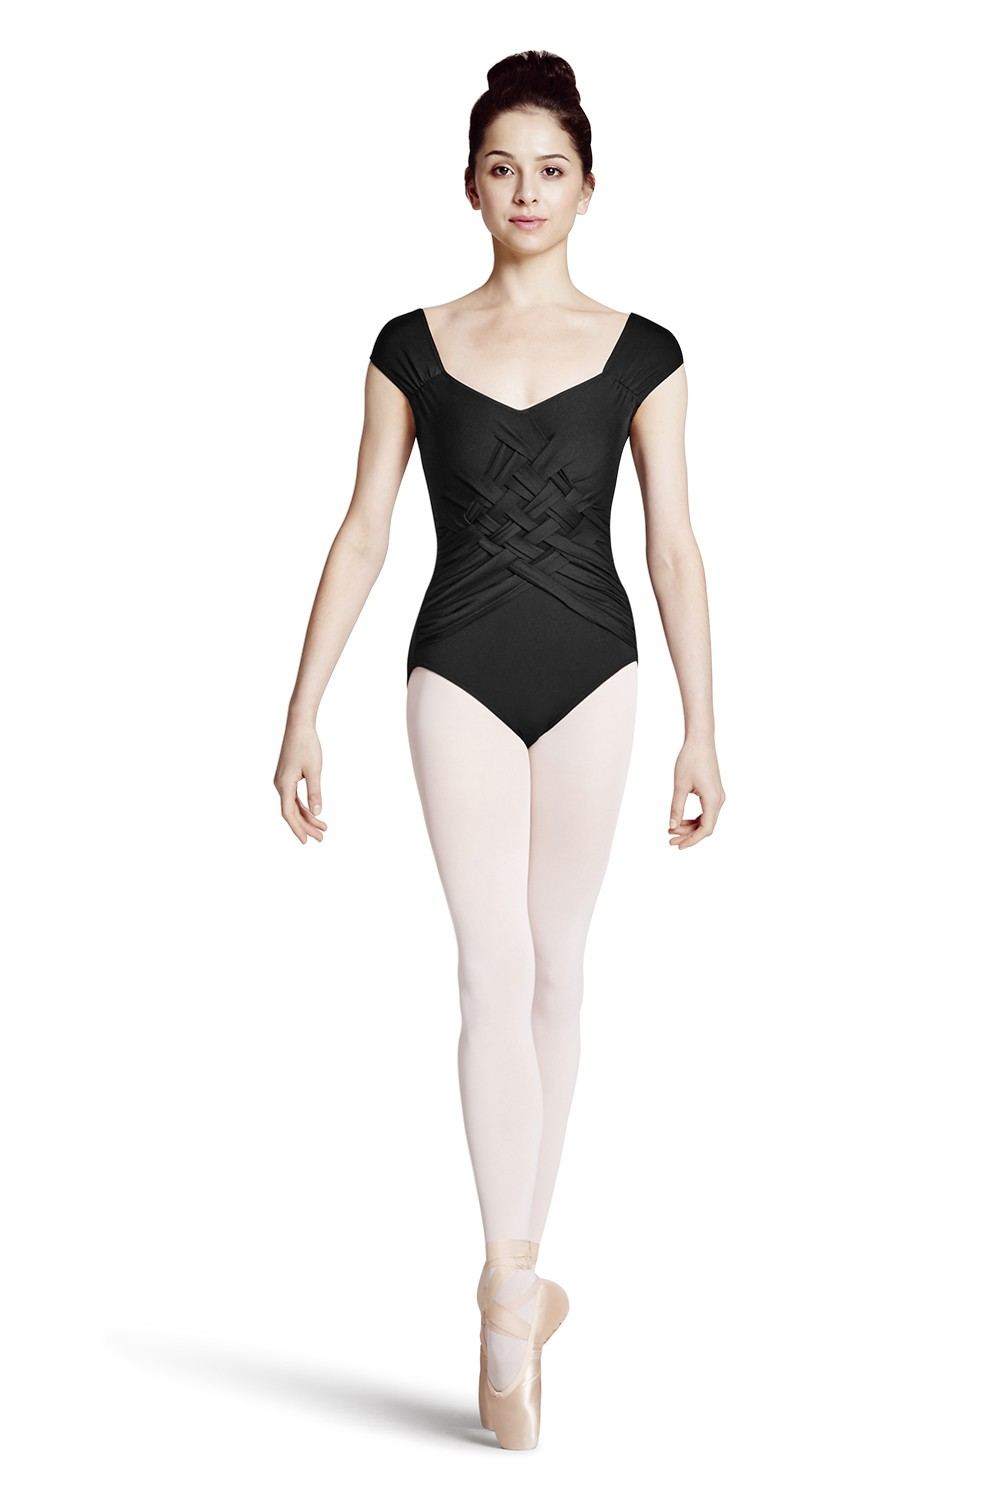 Weave Detail Cap Sleeve Leo Women's Dance Leotards